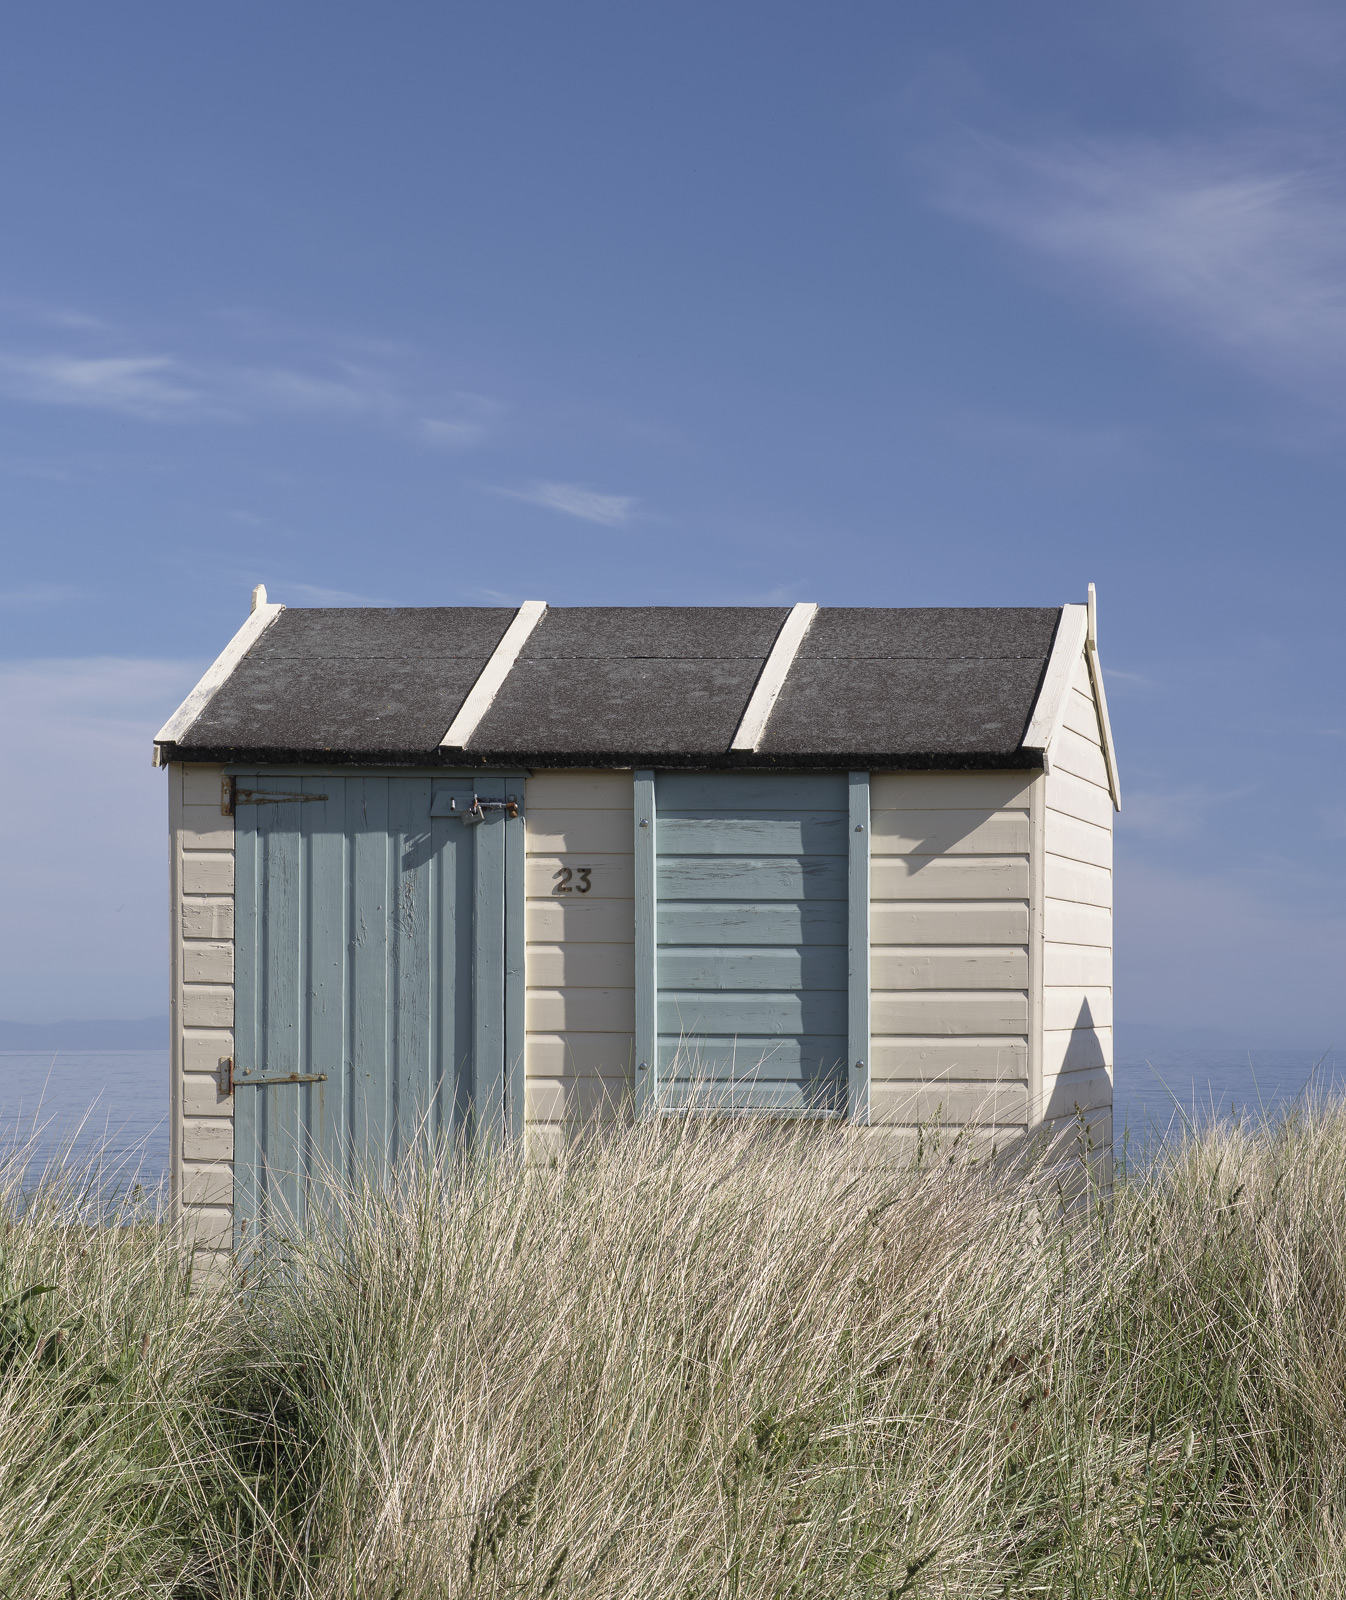 So this is my favourite of the subdued Hopeman huts I like the colour palette and the backdrop and mild quieter hues strike me...